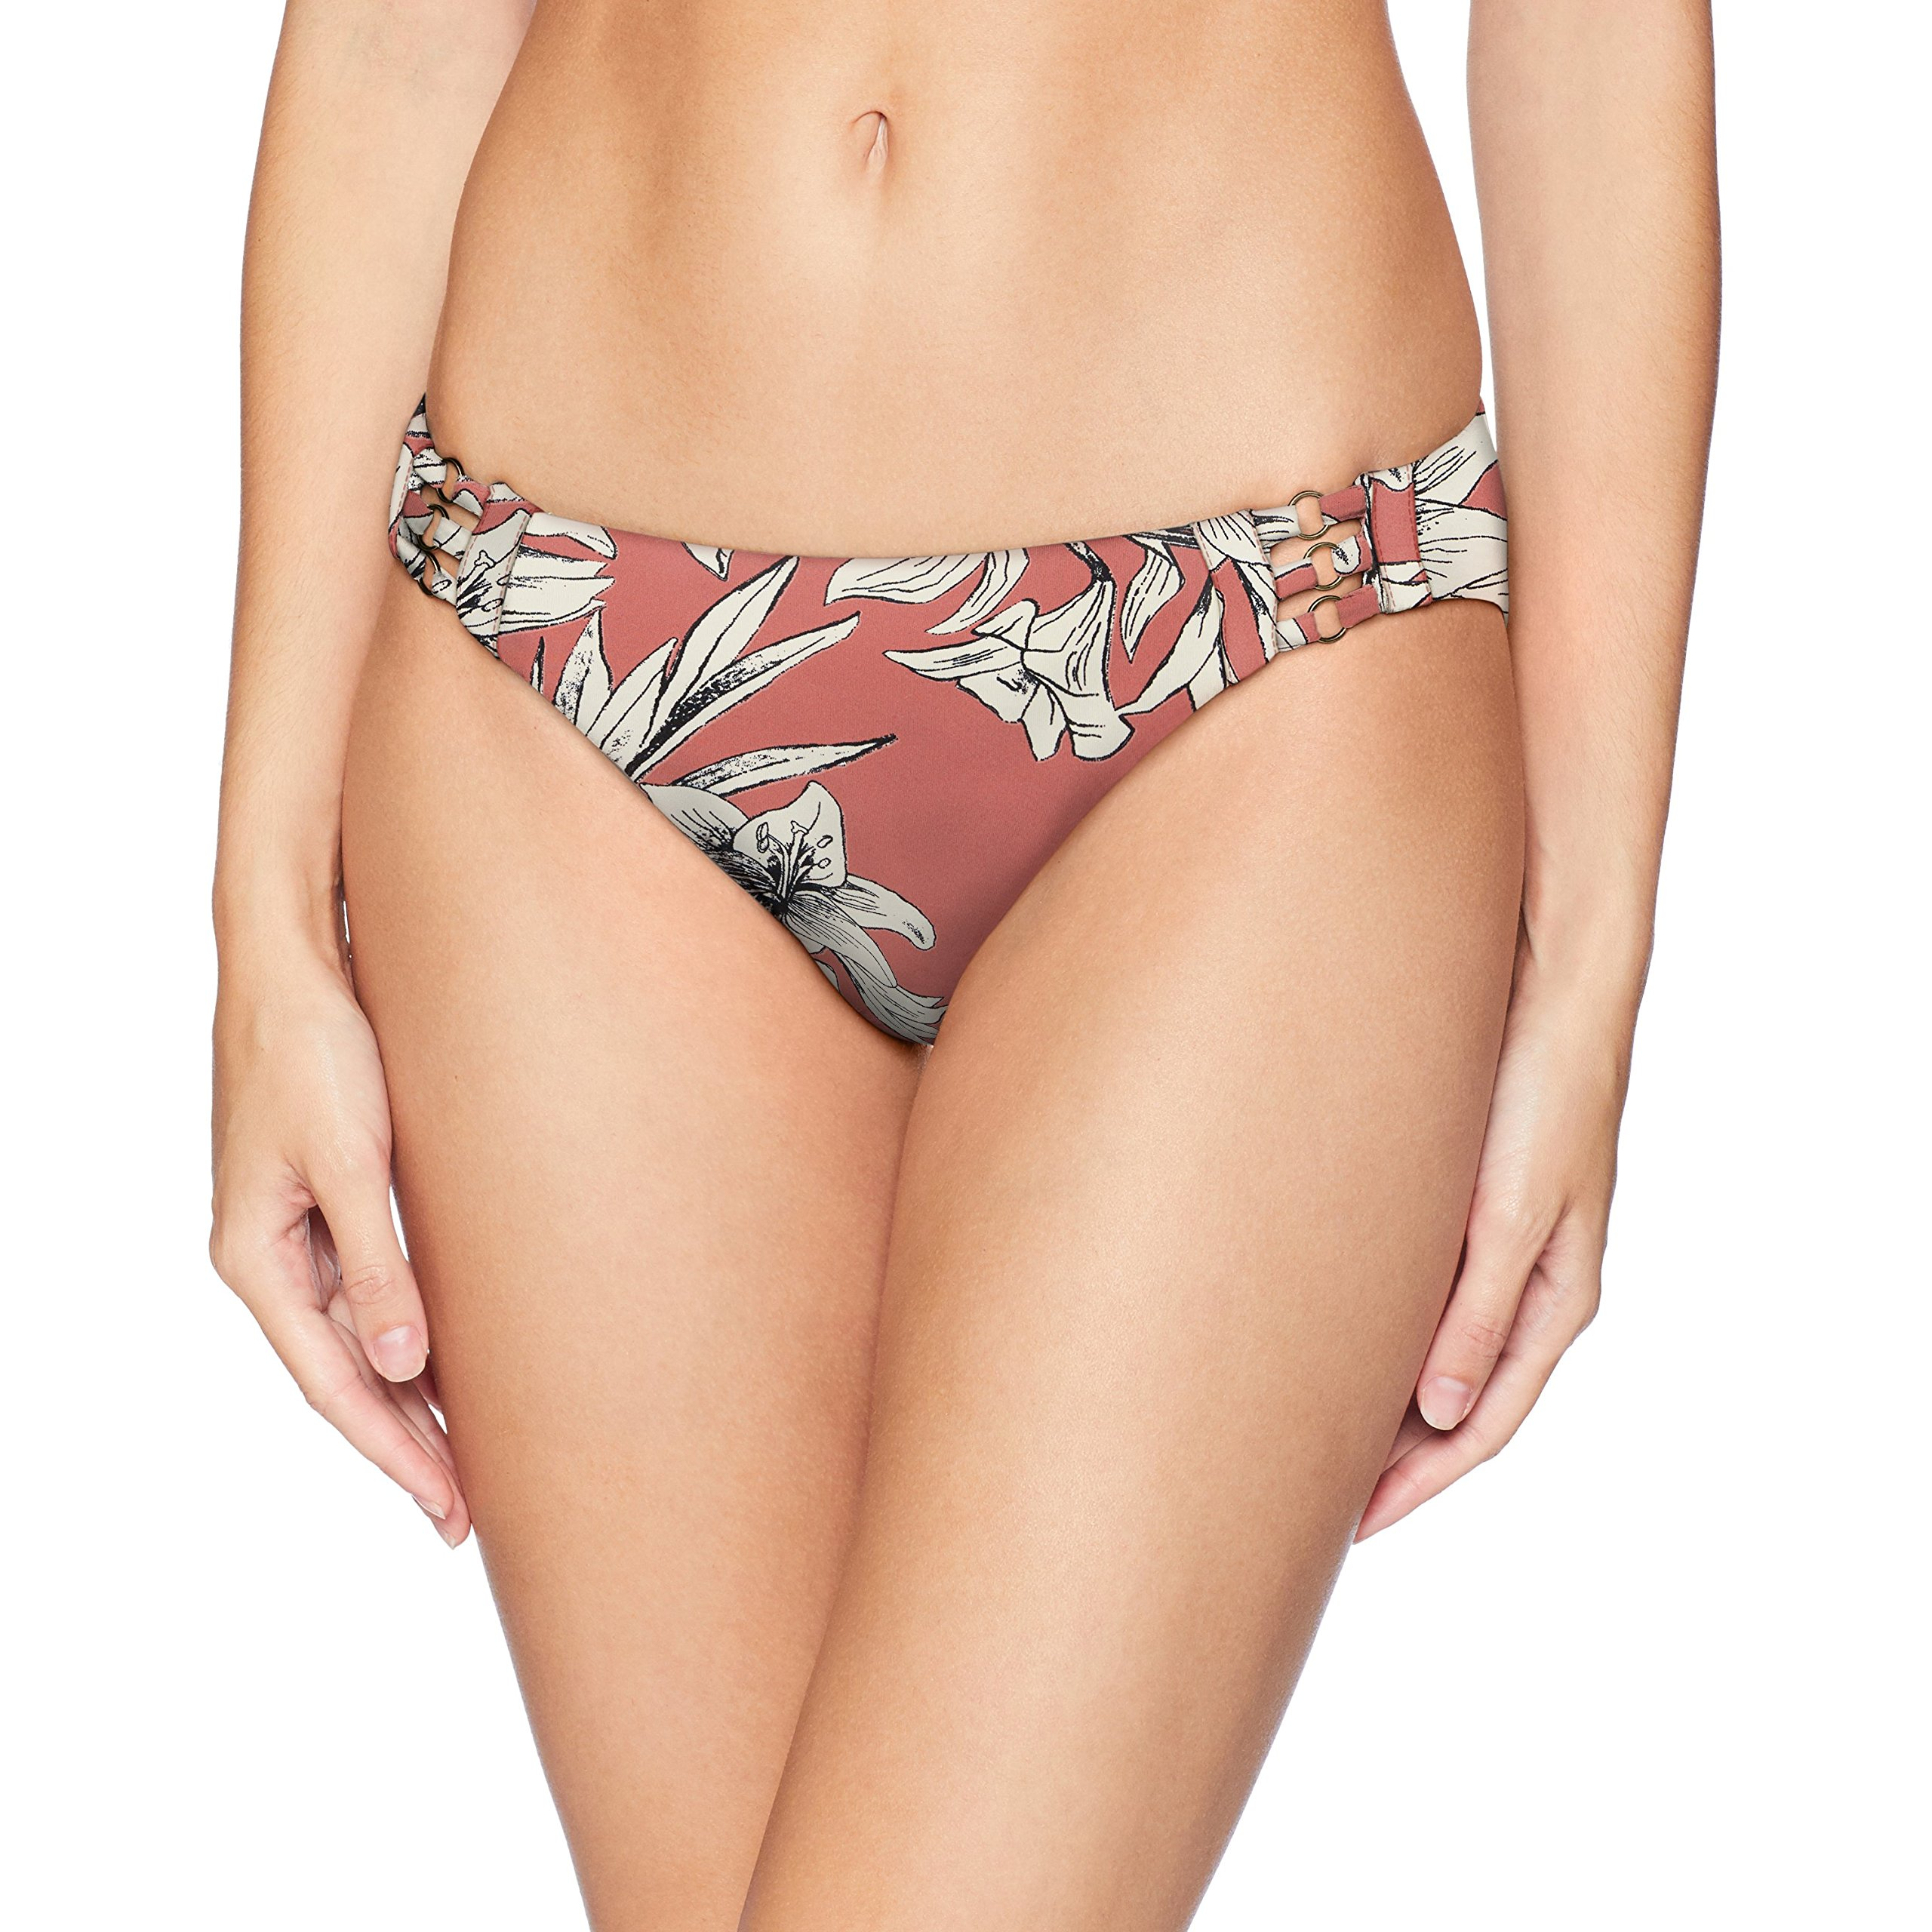 Roxy Junior's Printed Softly Love Full Bikini Swimsuit Bottom, Withered Rose Lily House, S by Roxy (Image #1)